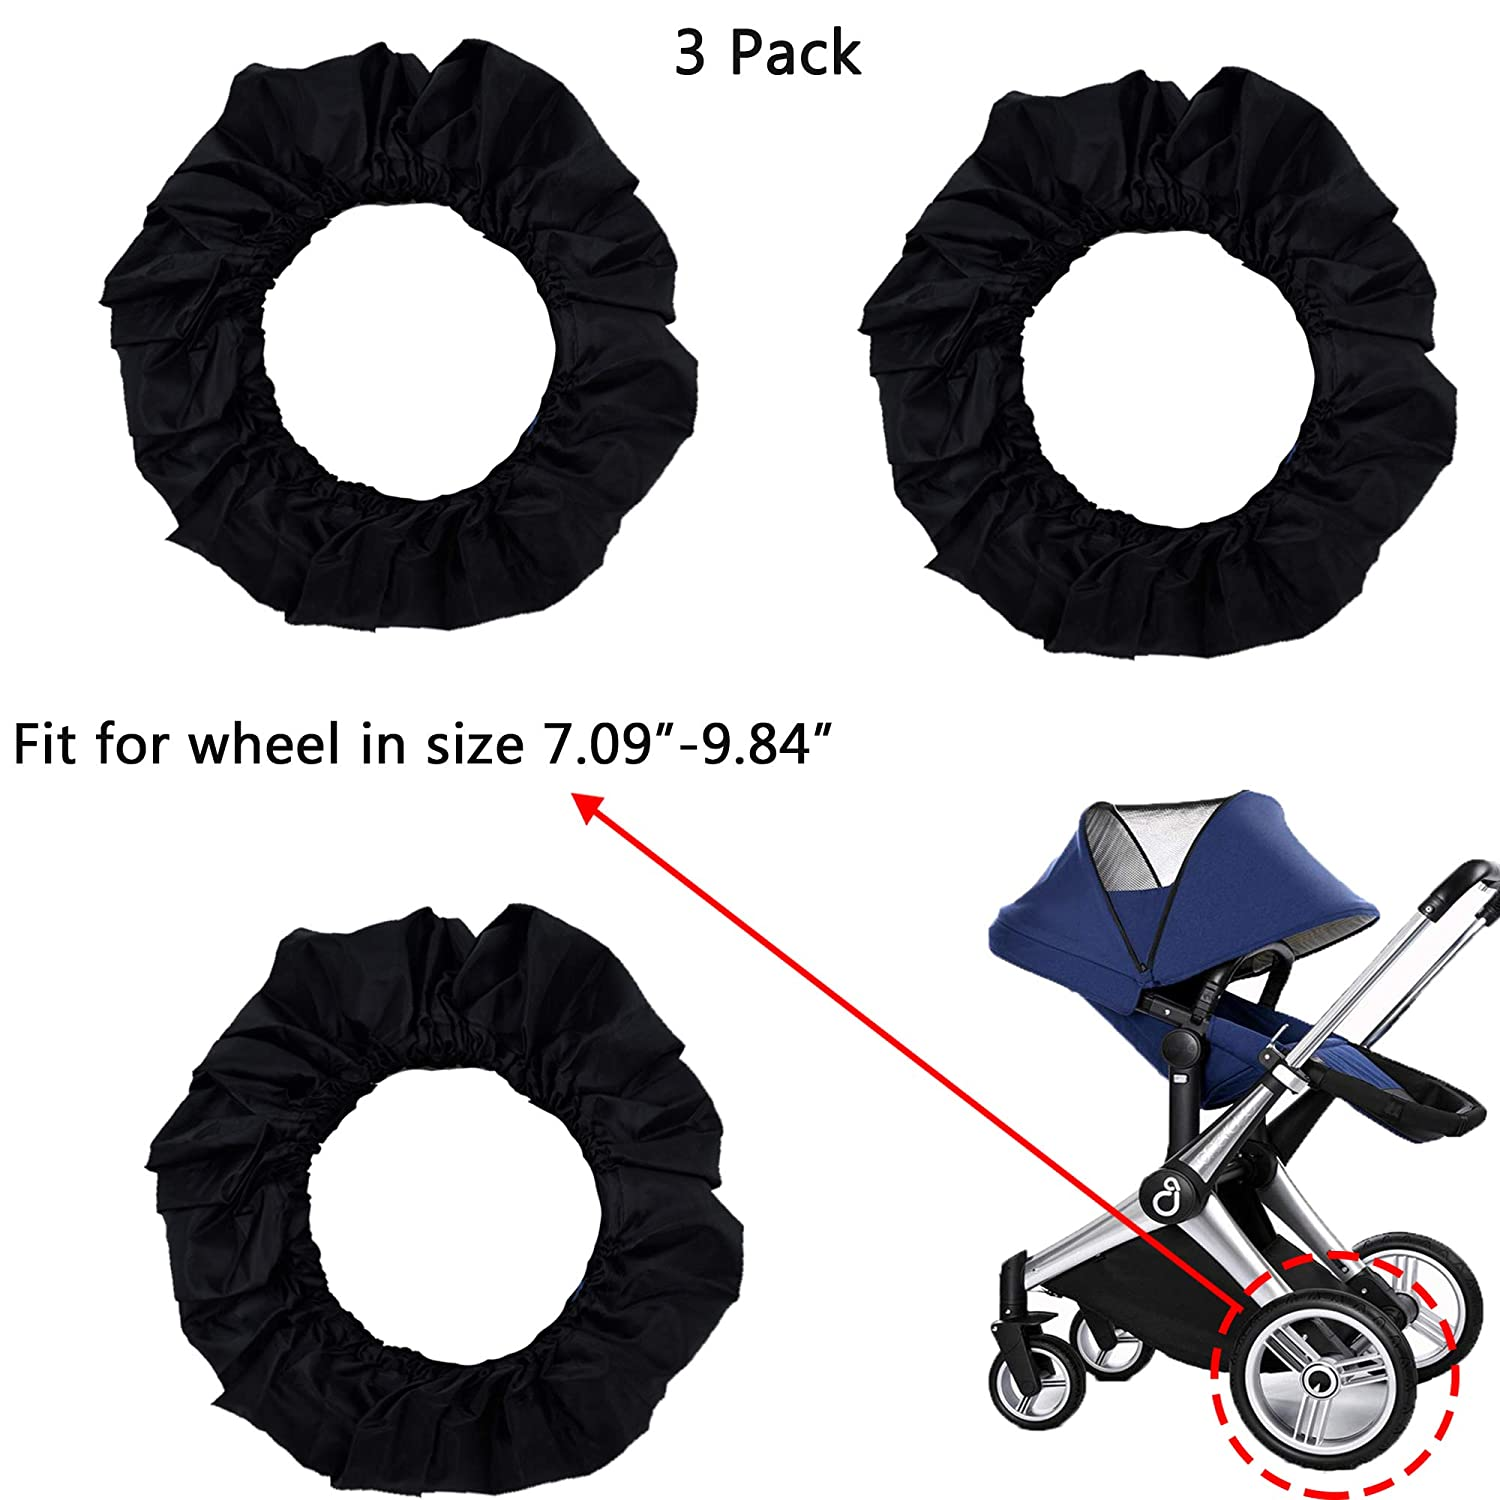 LiXiongBao 3 Pcs Baby Stroller Wheel Cover Black Dustproof Wheelchair Tire Protector Cover Pushchair Wheel Cover Protector Accessory for 7.09 inches-9.84 inches